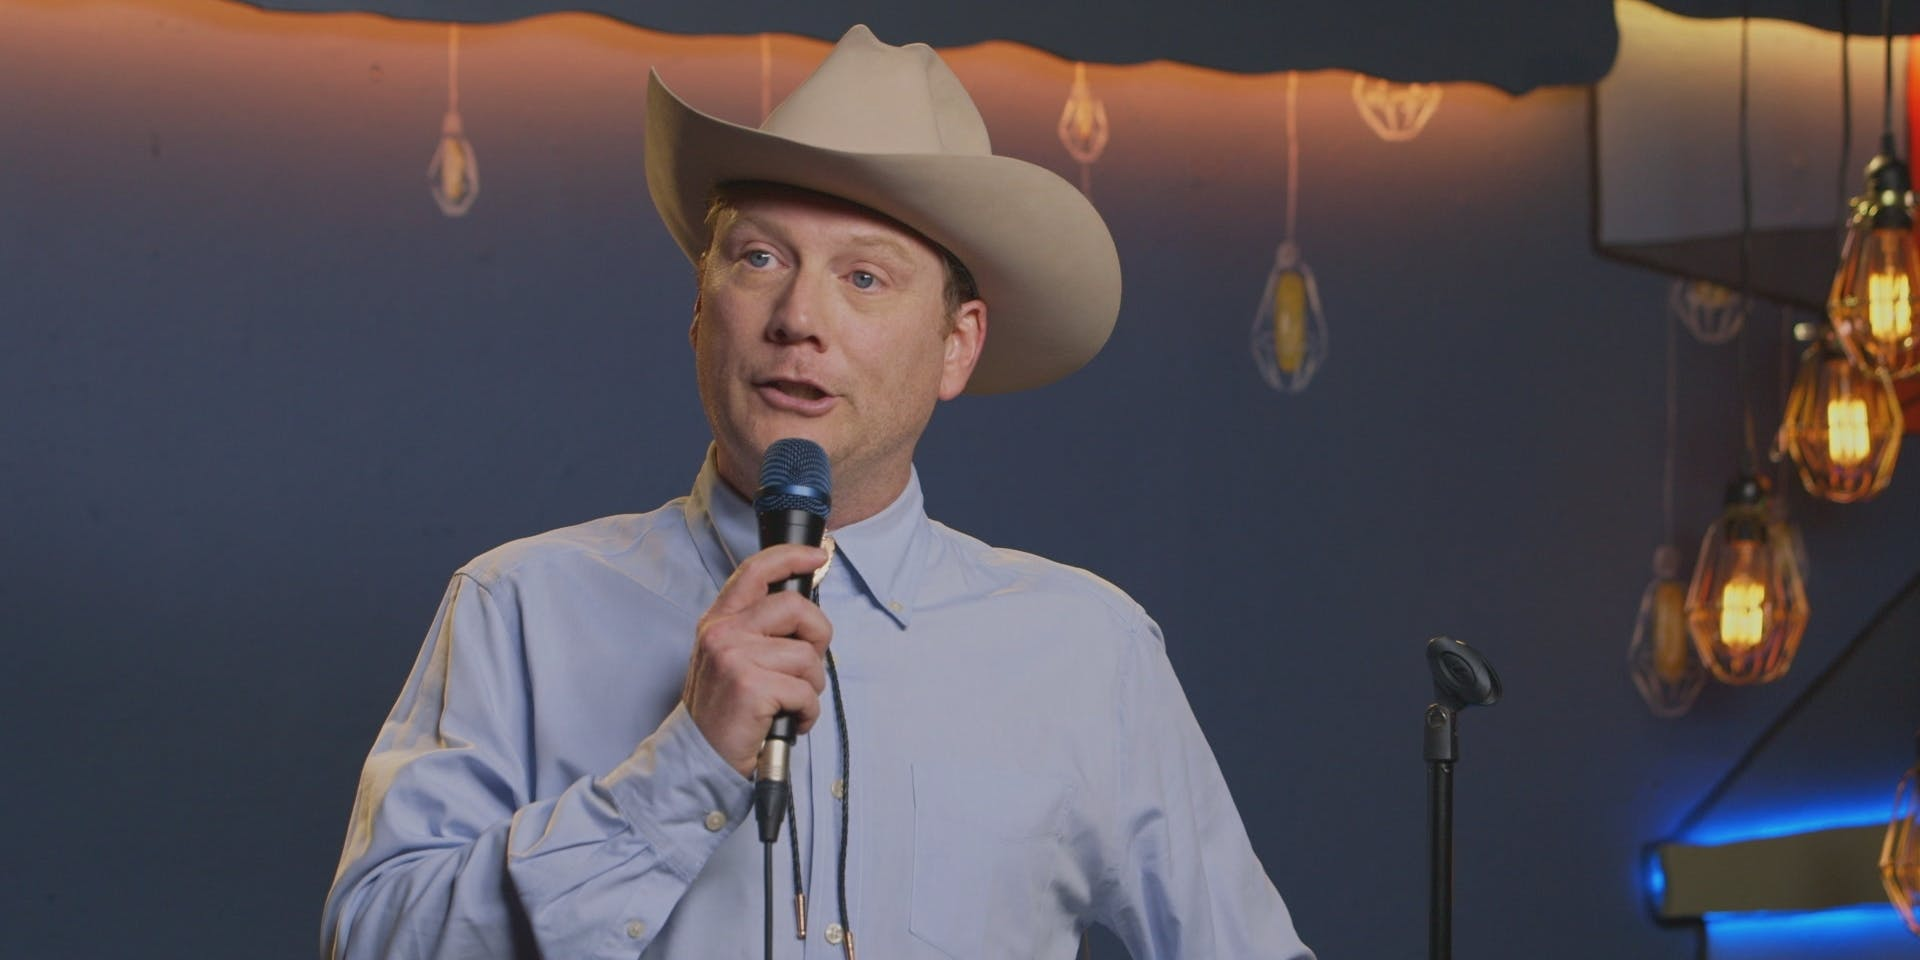 Andy Daly as Dalton Wilcox